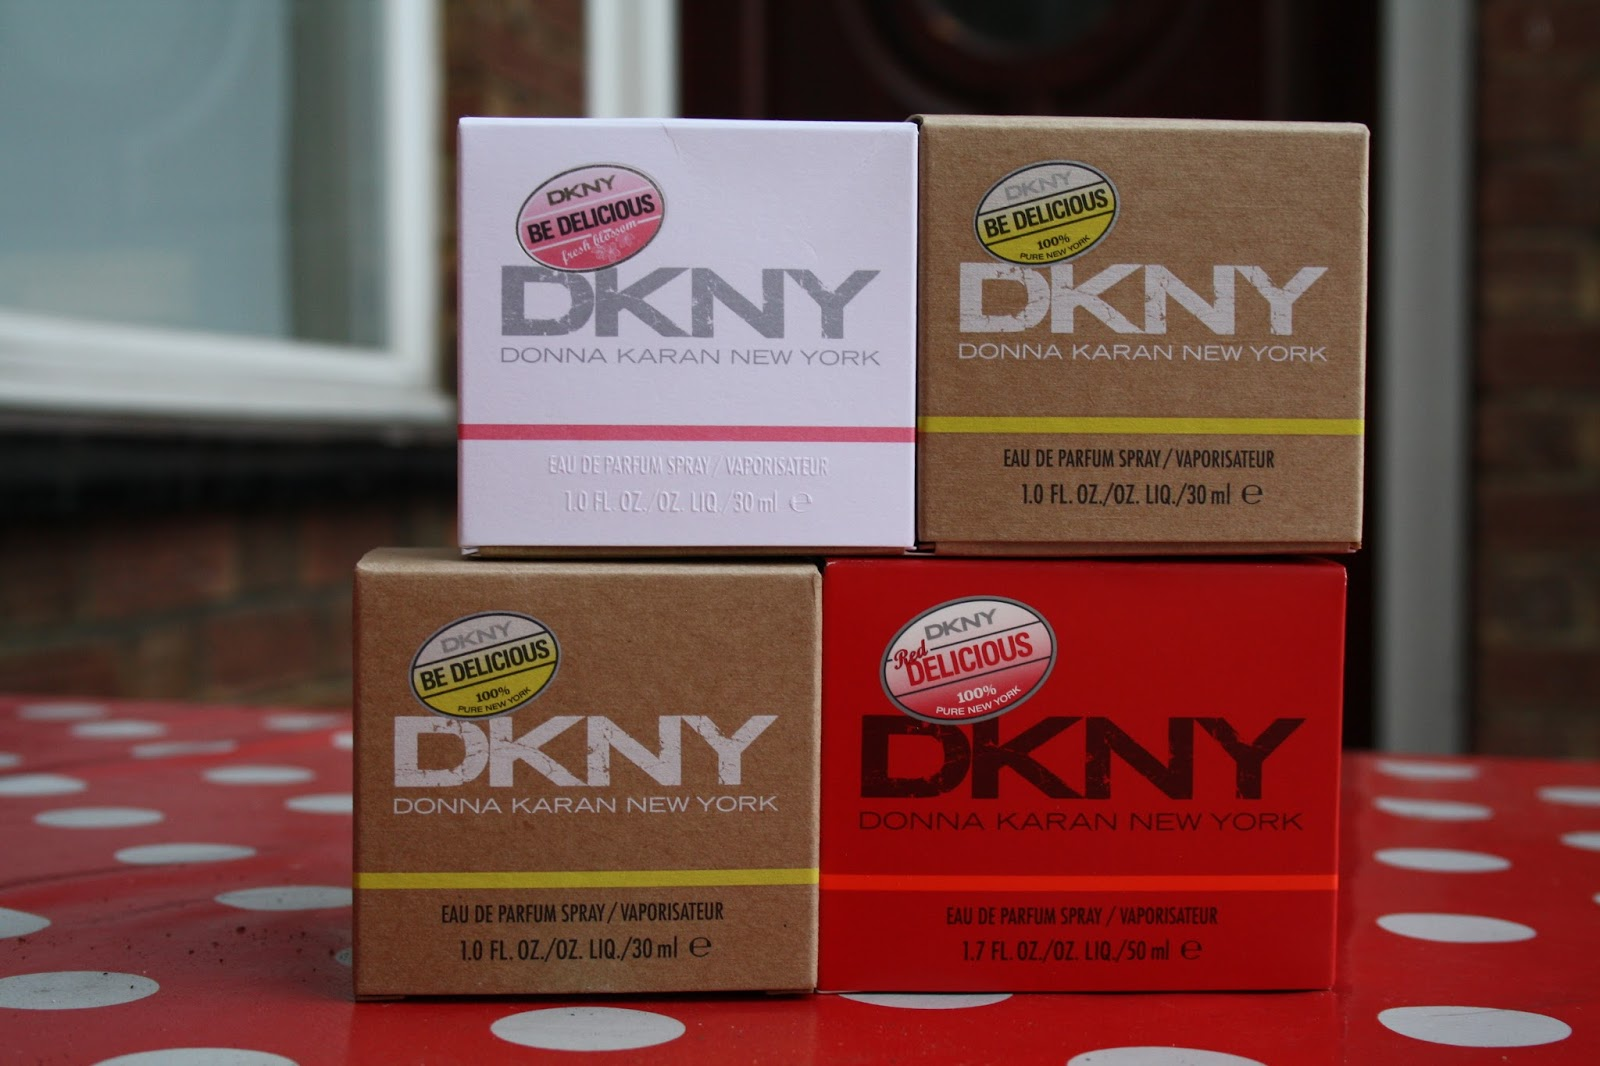 DKNY Be Delicious!